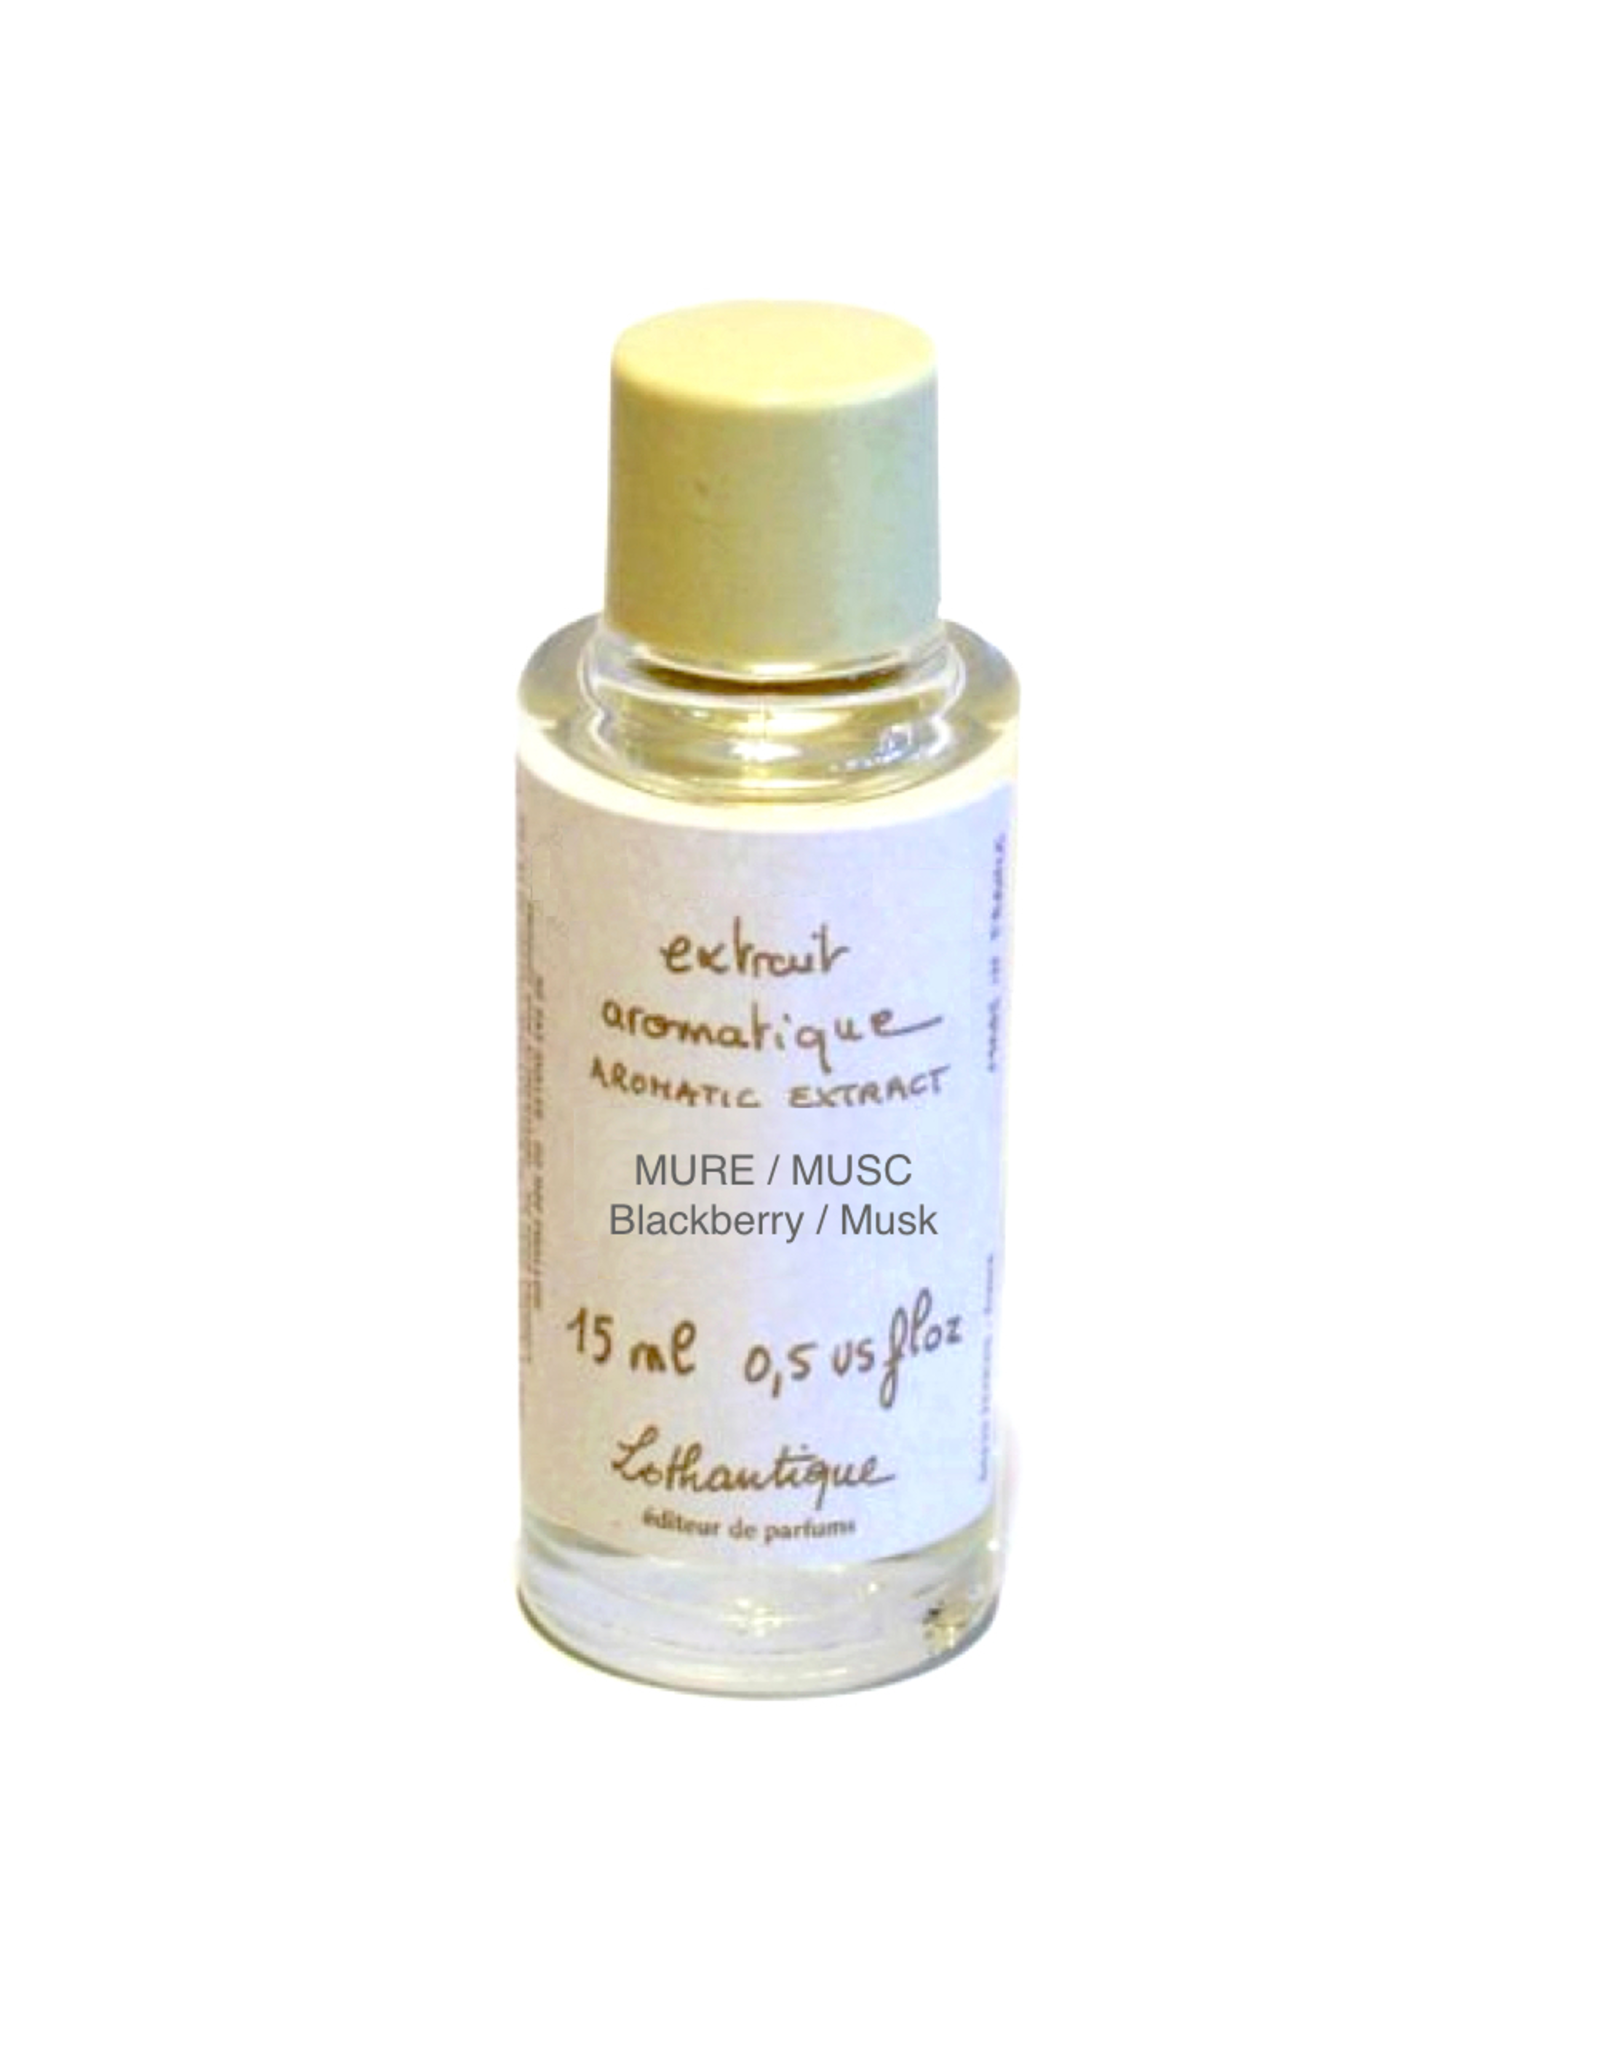 Lothantique Aromatic Extract Essential Perfume Oil 15ml  Blackberry Musk